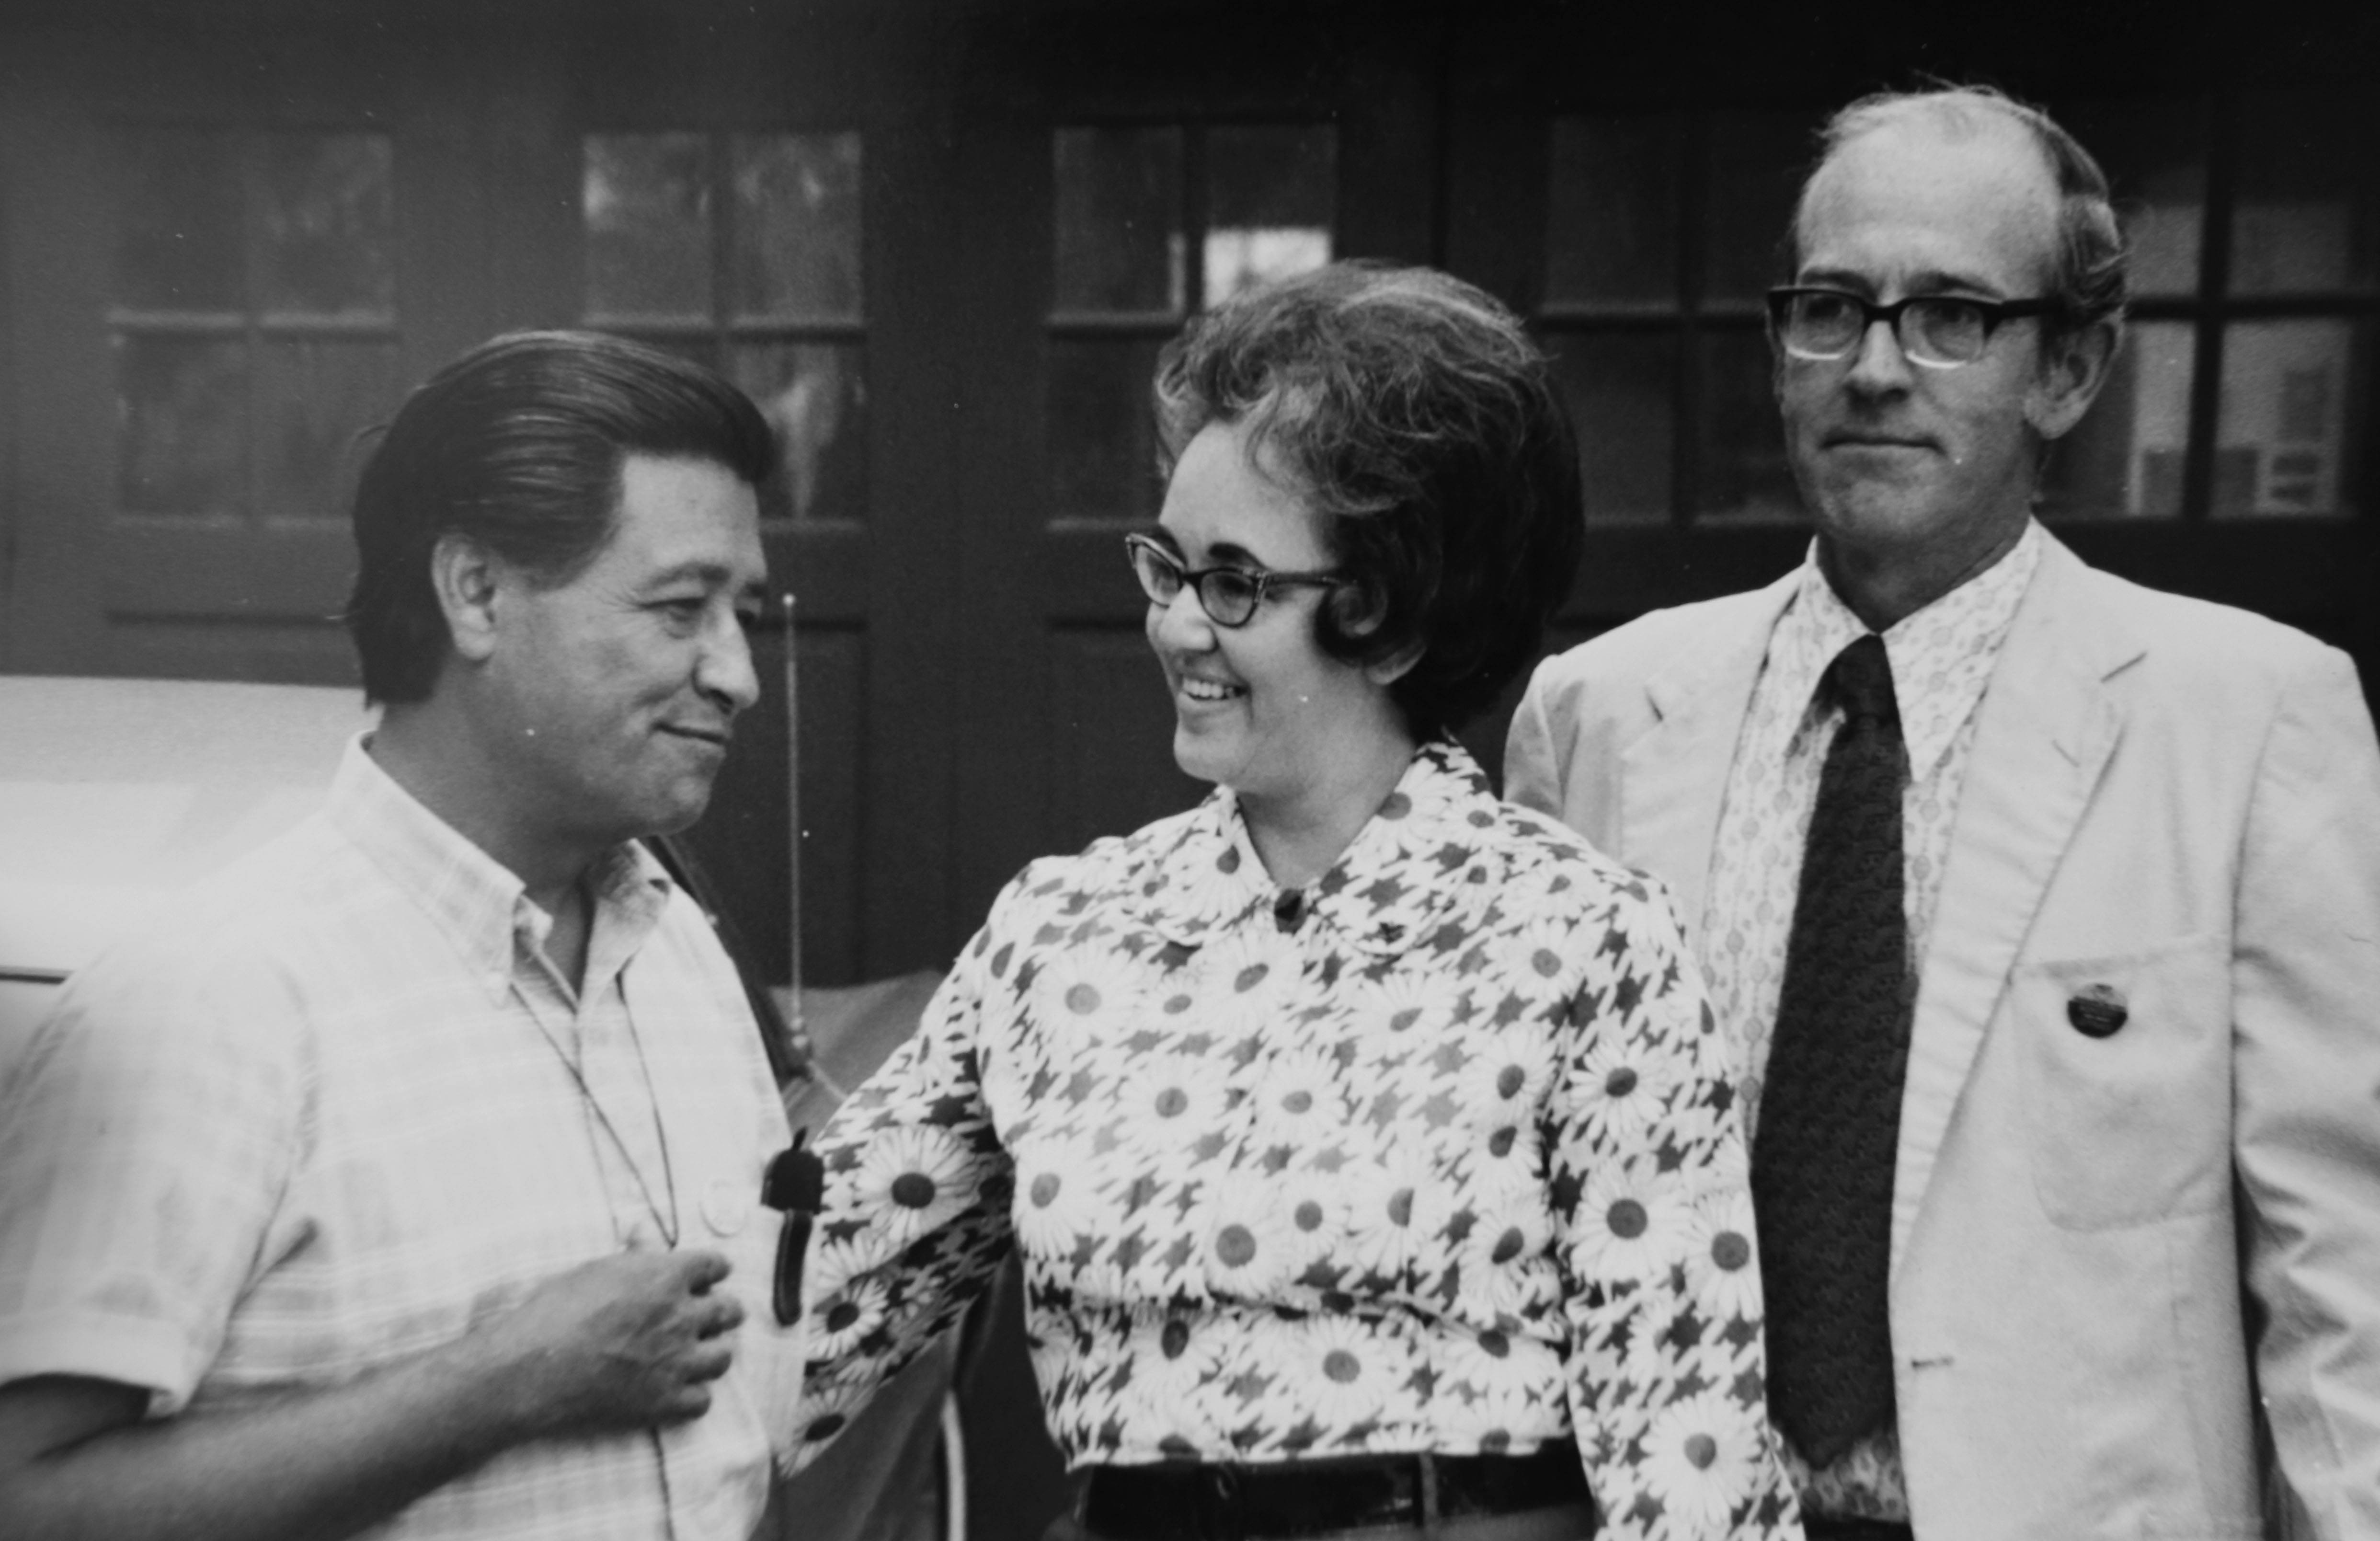 Olgha Sandman with her husband, the Rev. Dr. J. Robert Sandman, right, and migrant worker advocate Cesar Chavez, left, in a photo from 1972.